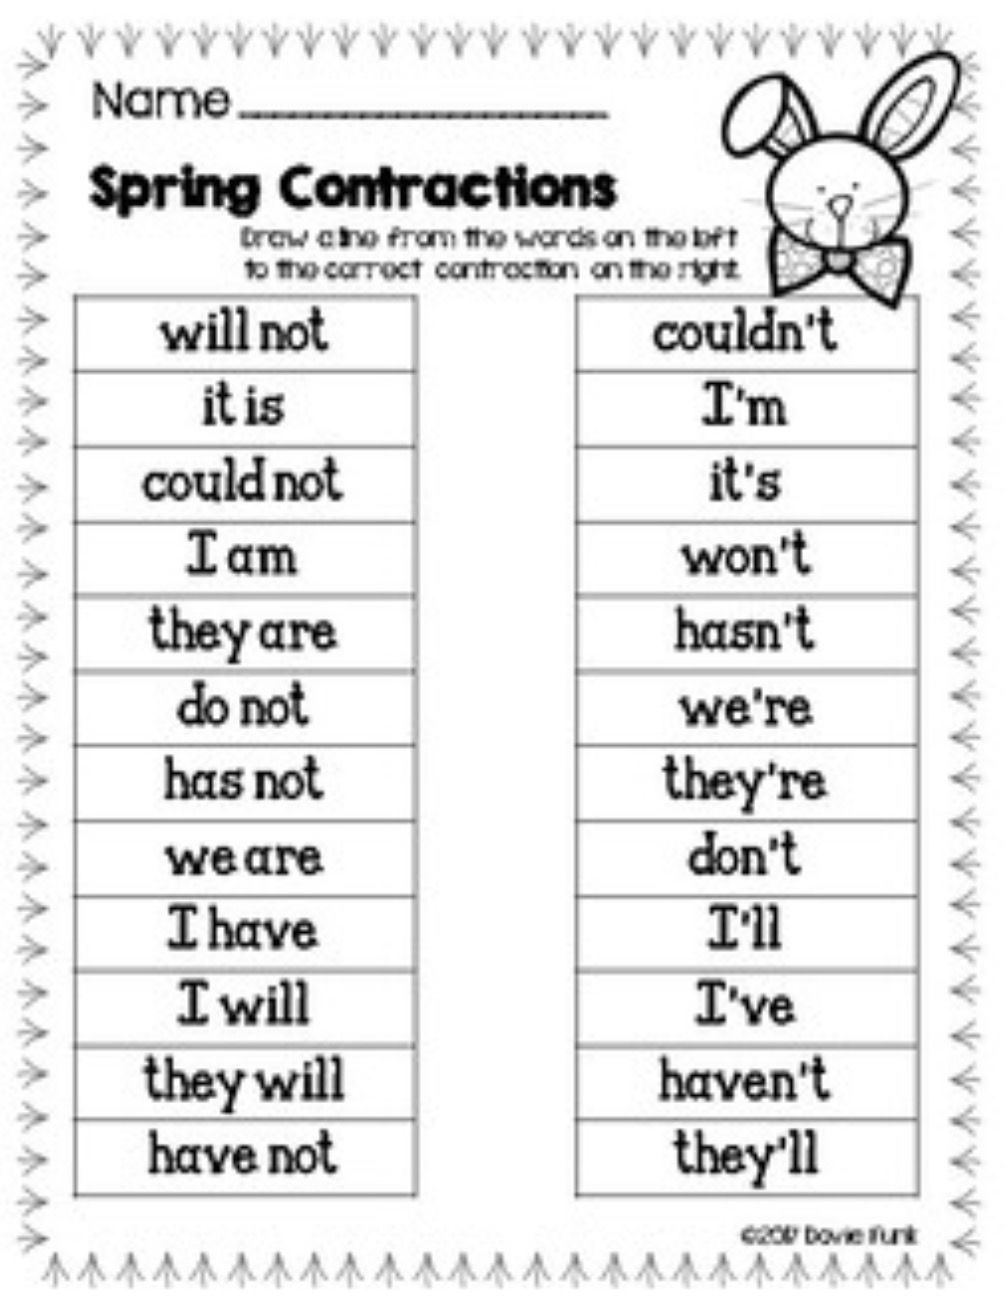 Spring Contractions 2 Printables And An Easter Egg Literacy Center Literacy Centers Relief Teaching Ideas Literacy